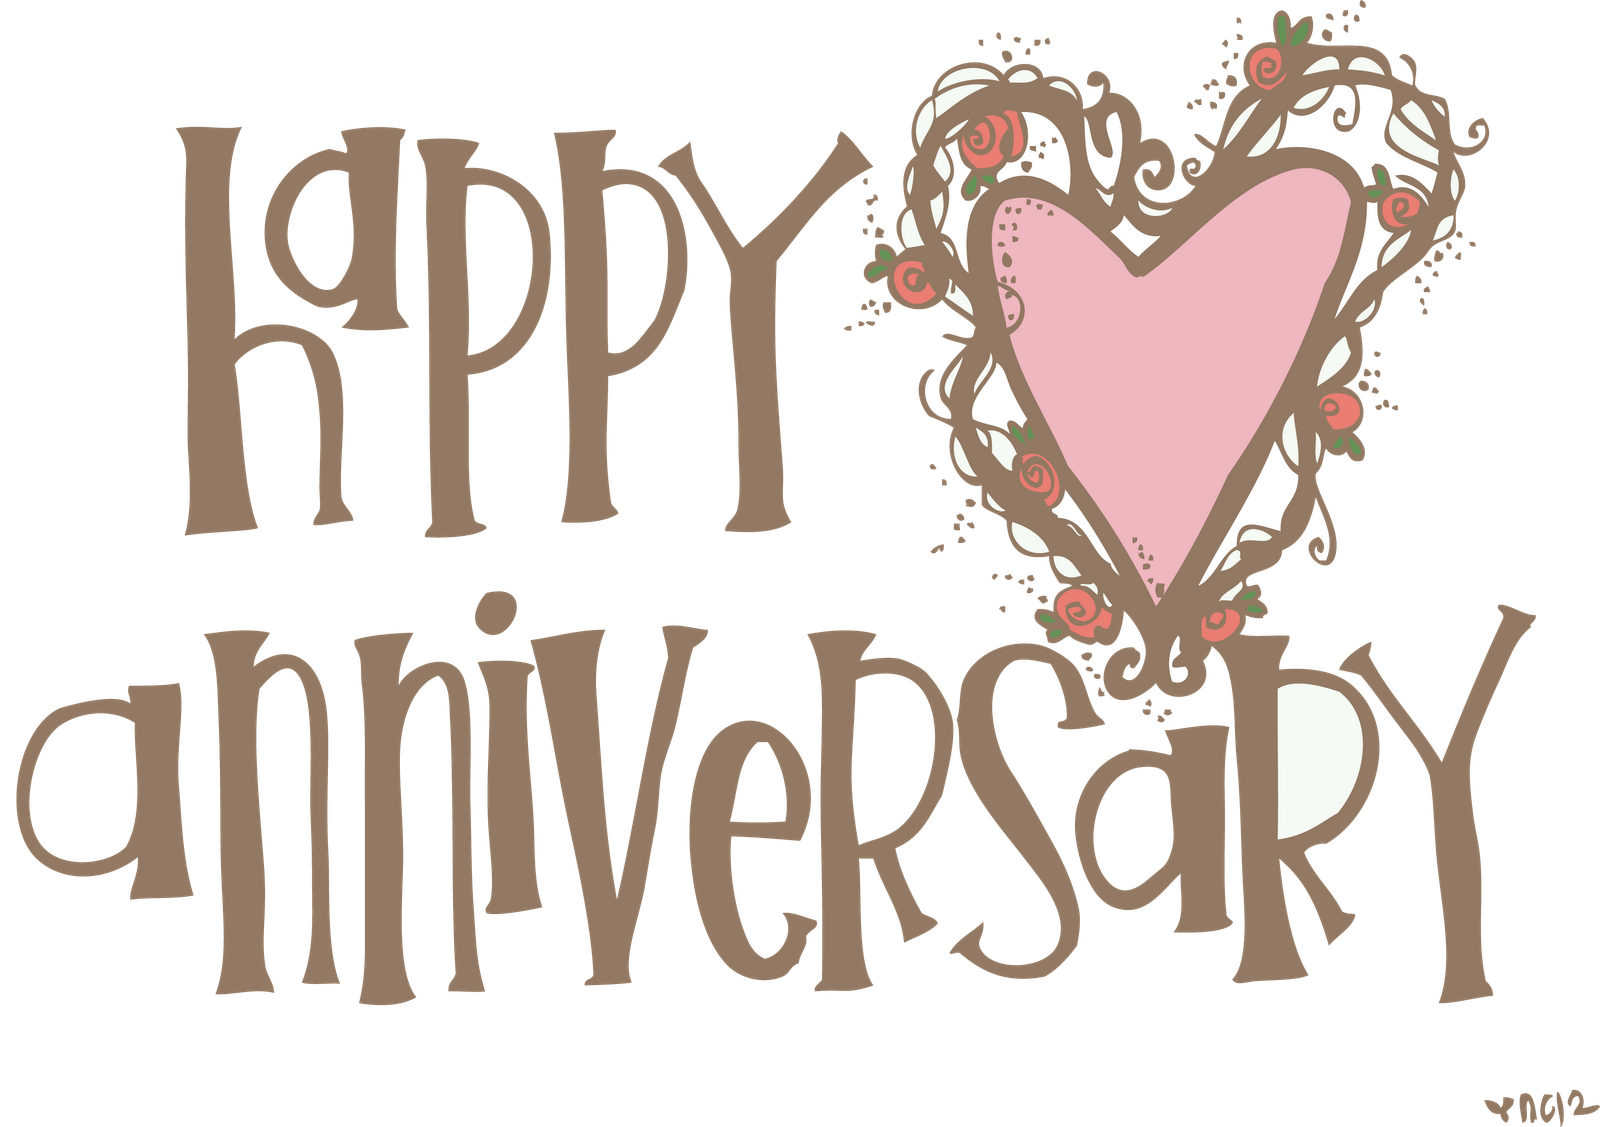 Happy anniversary download wedding anniversary clip art free